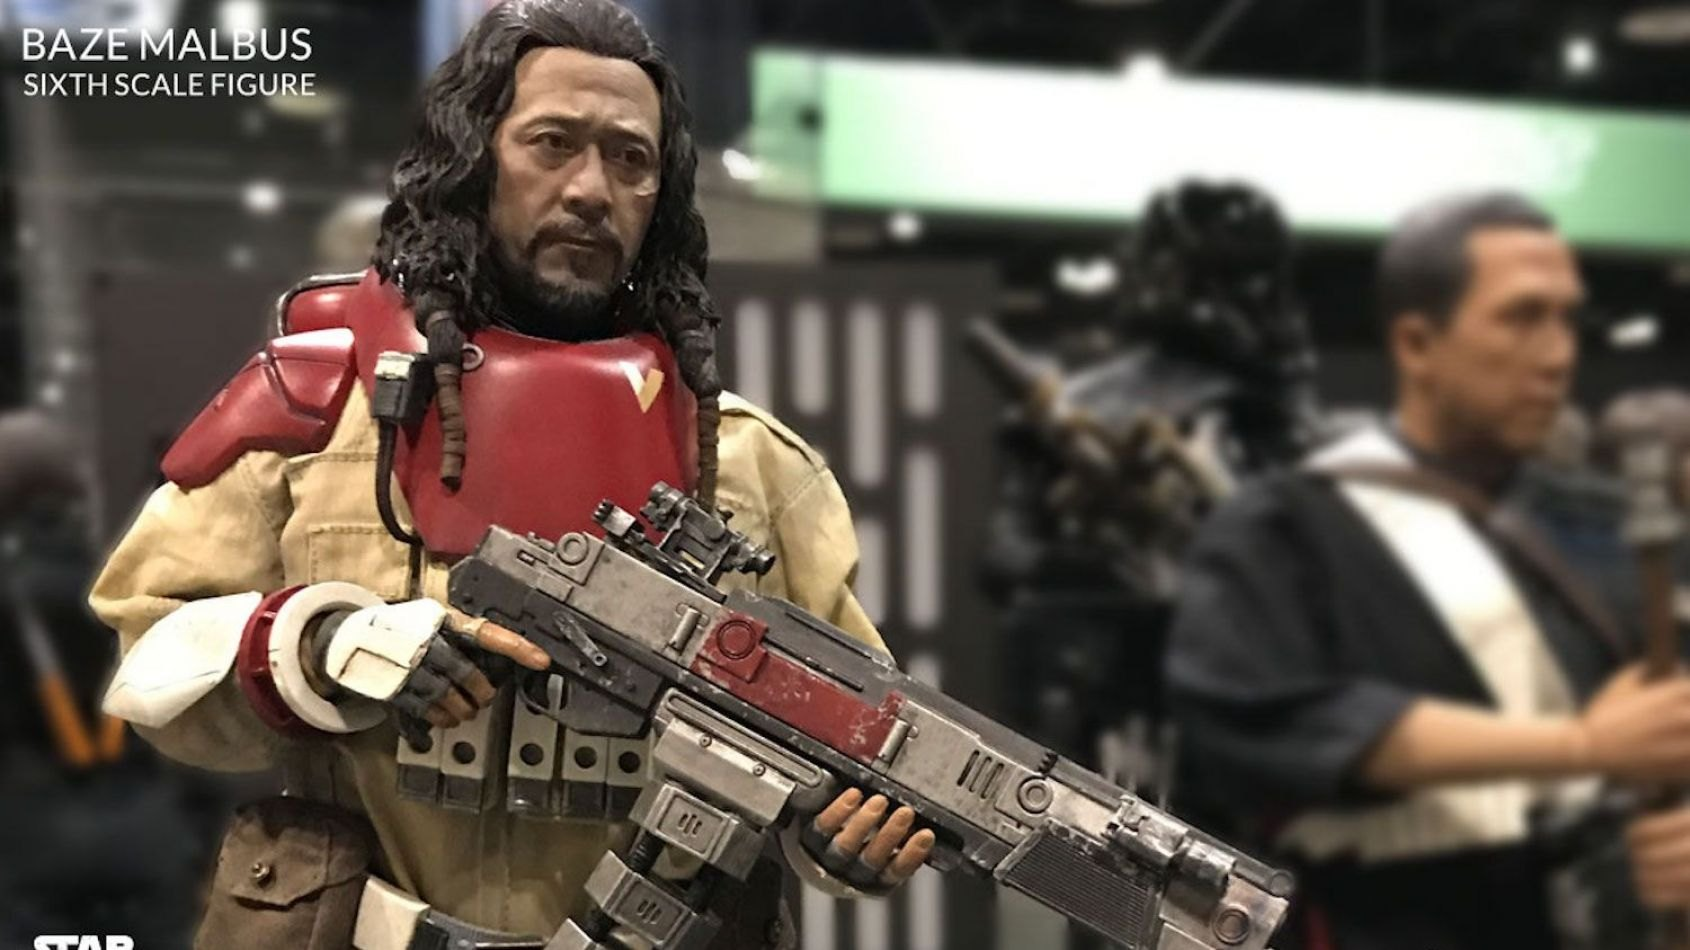 Hot Toys: la figurine de Base Malbus de Rogue One